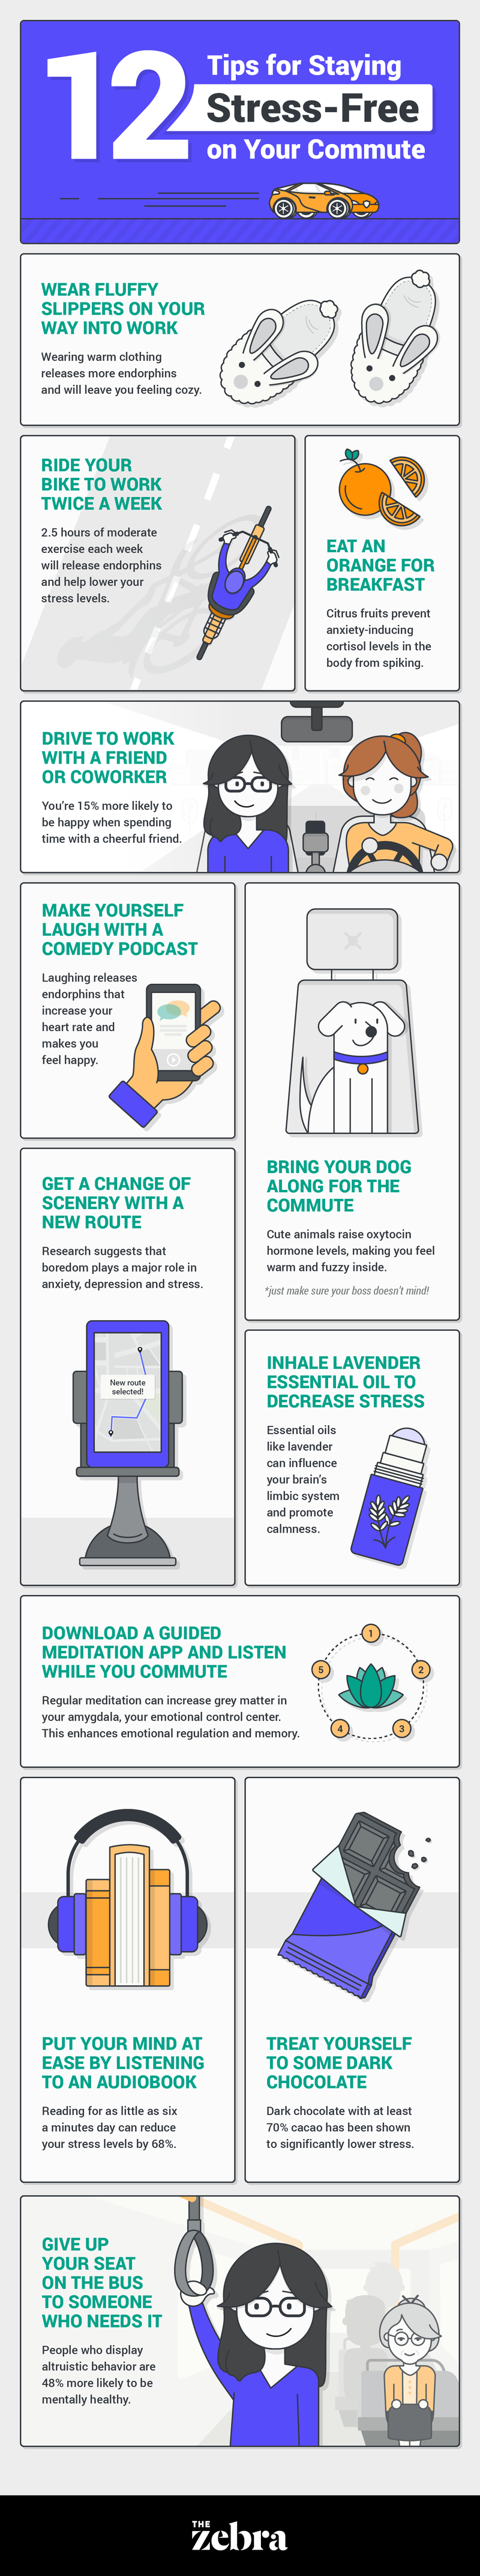 stress-free commute tips